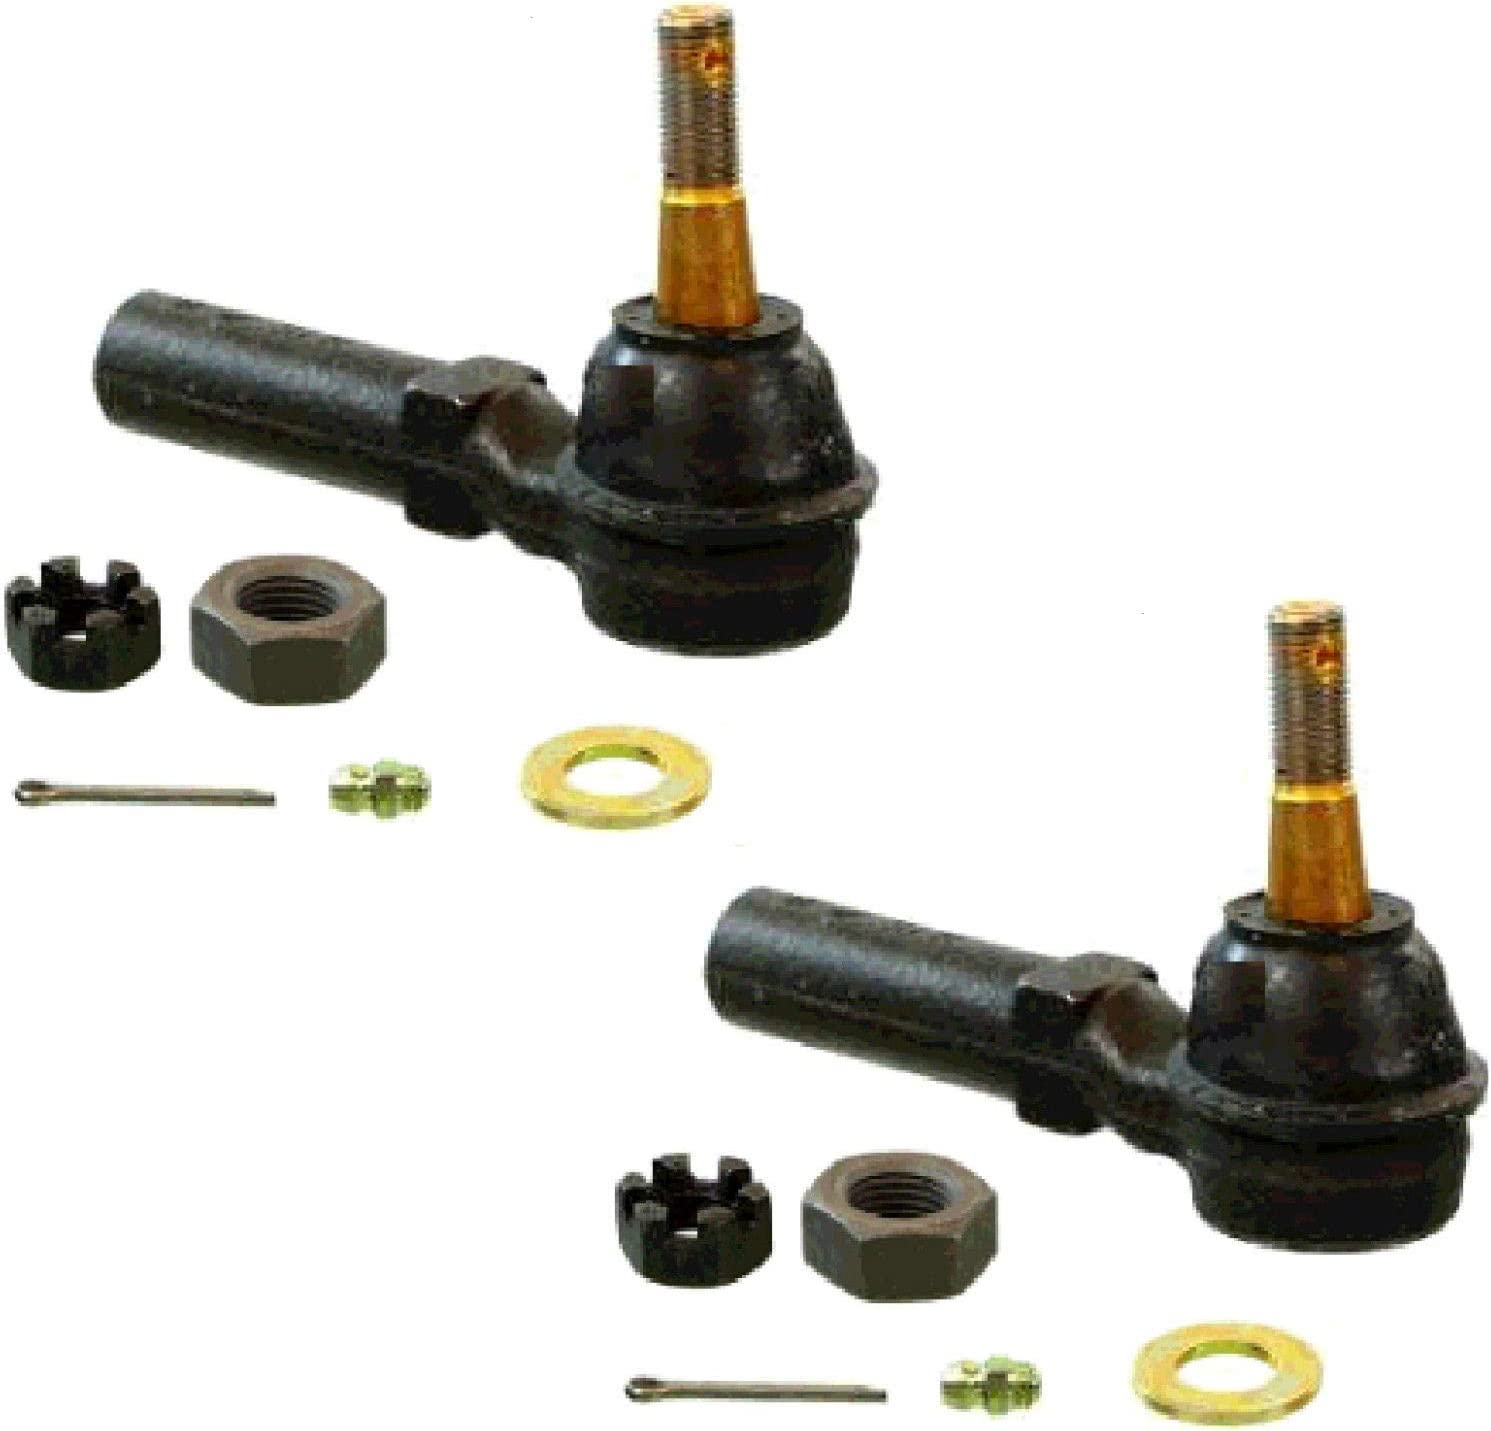 2013 Fits Acura TL Front Right Outer Steering Tie Rod End With Five Years Warranty